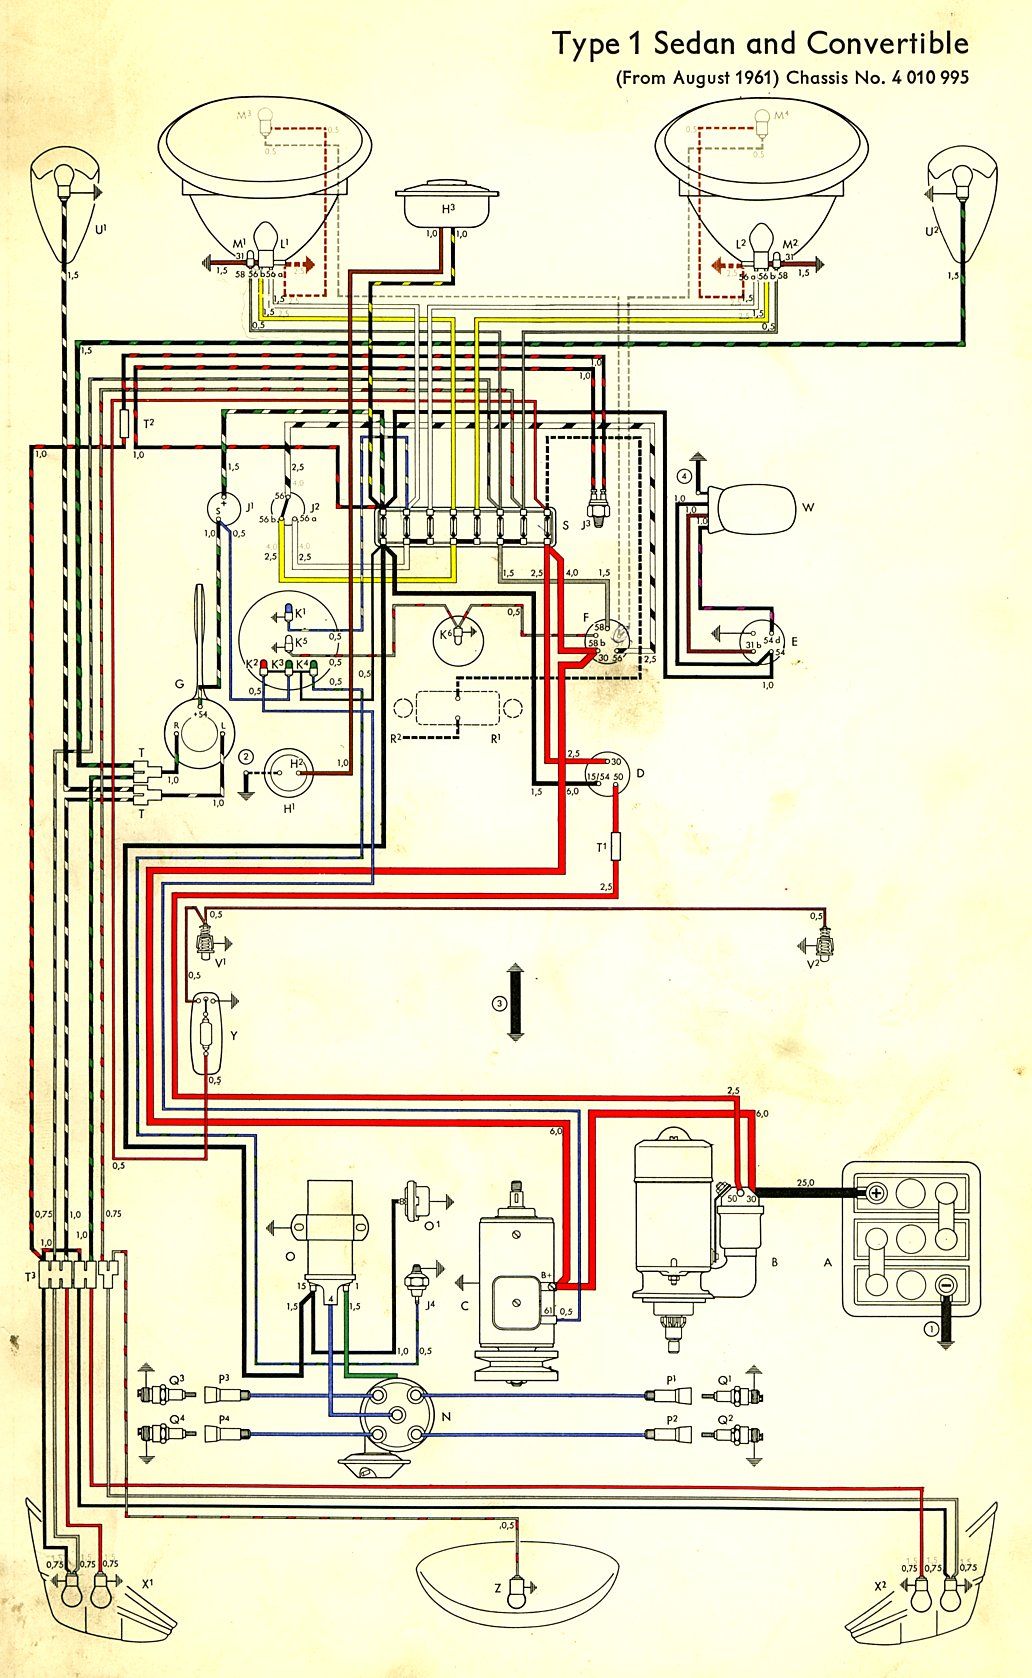 vw wiring diagram for 1977 1962 beetle wiring diagram thegoldenbug com ignition wiring diagram for 1977 f150 #1